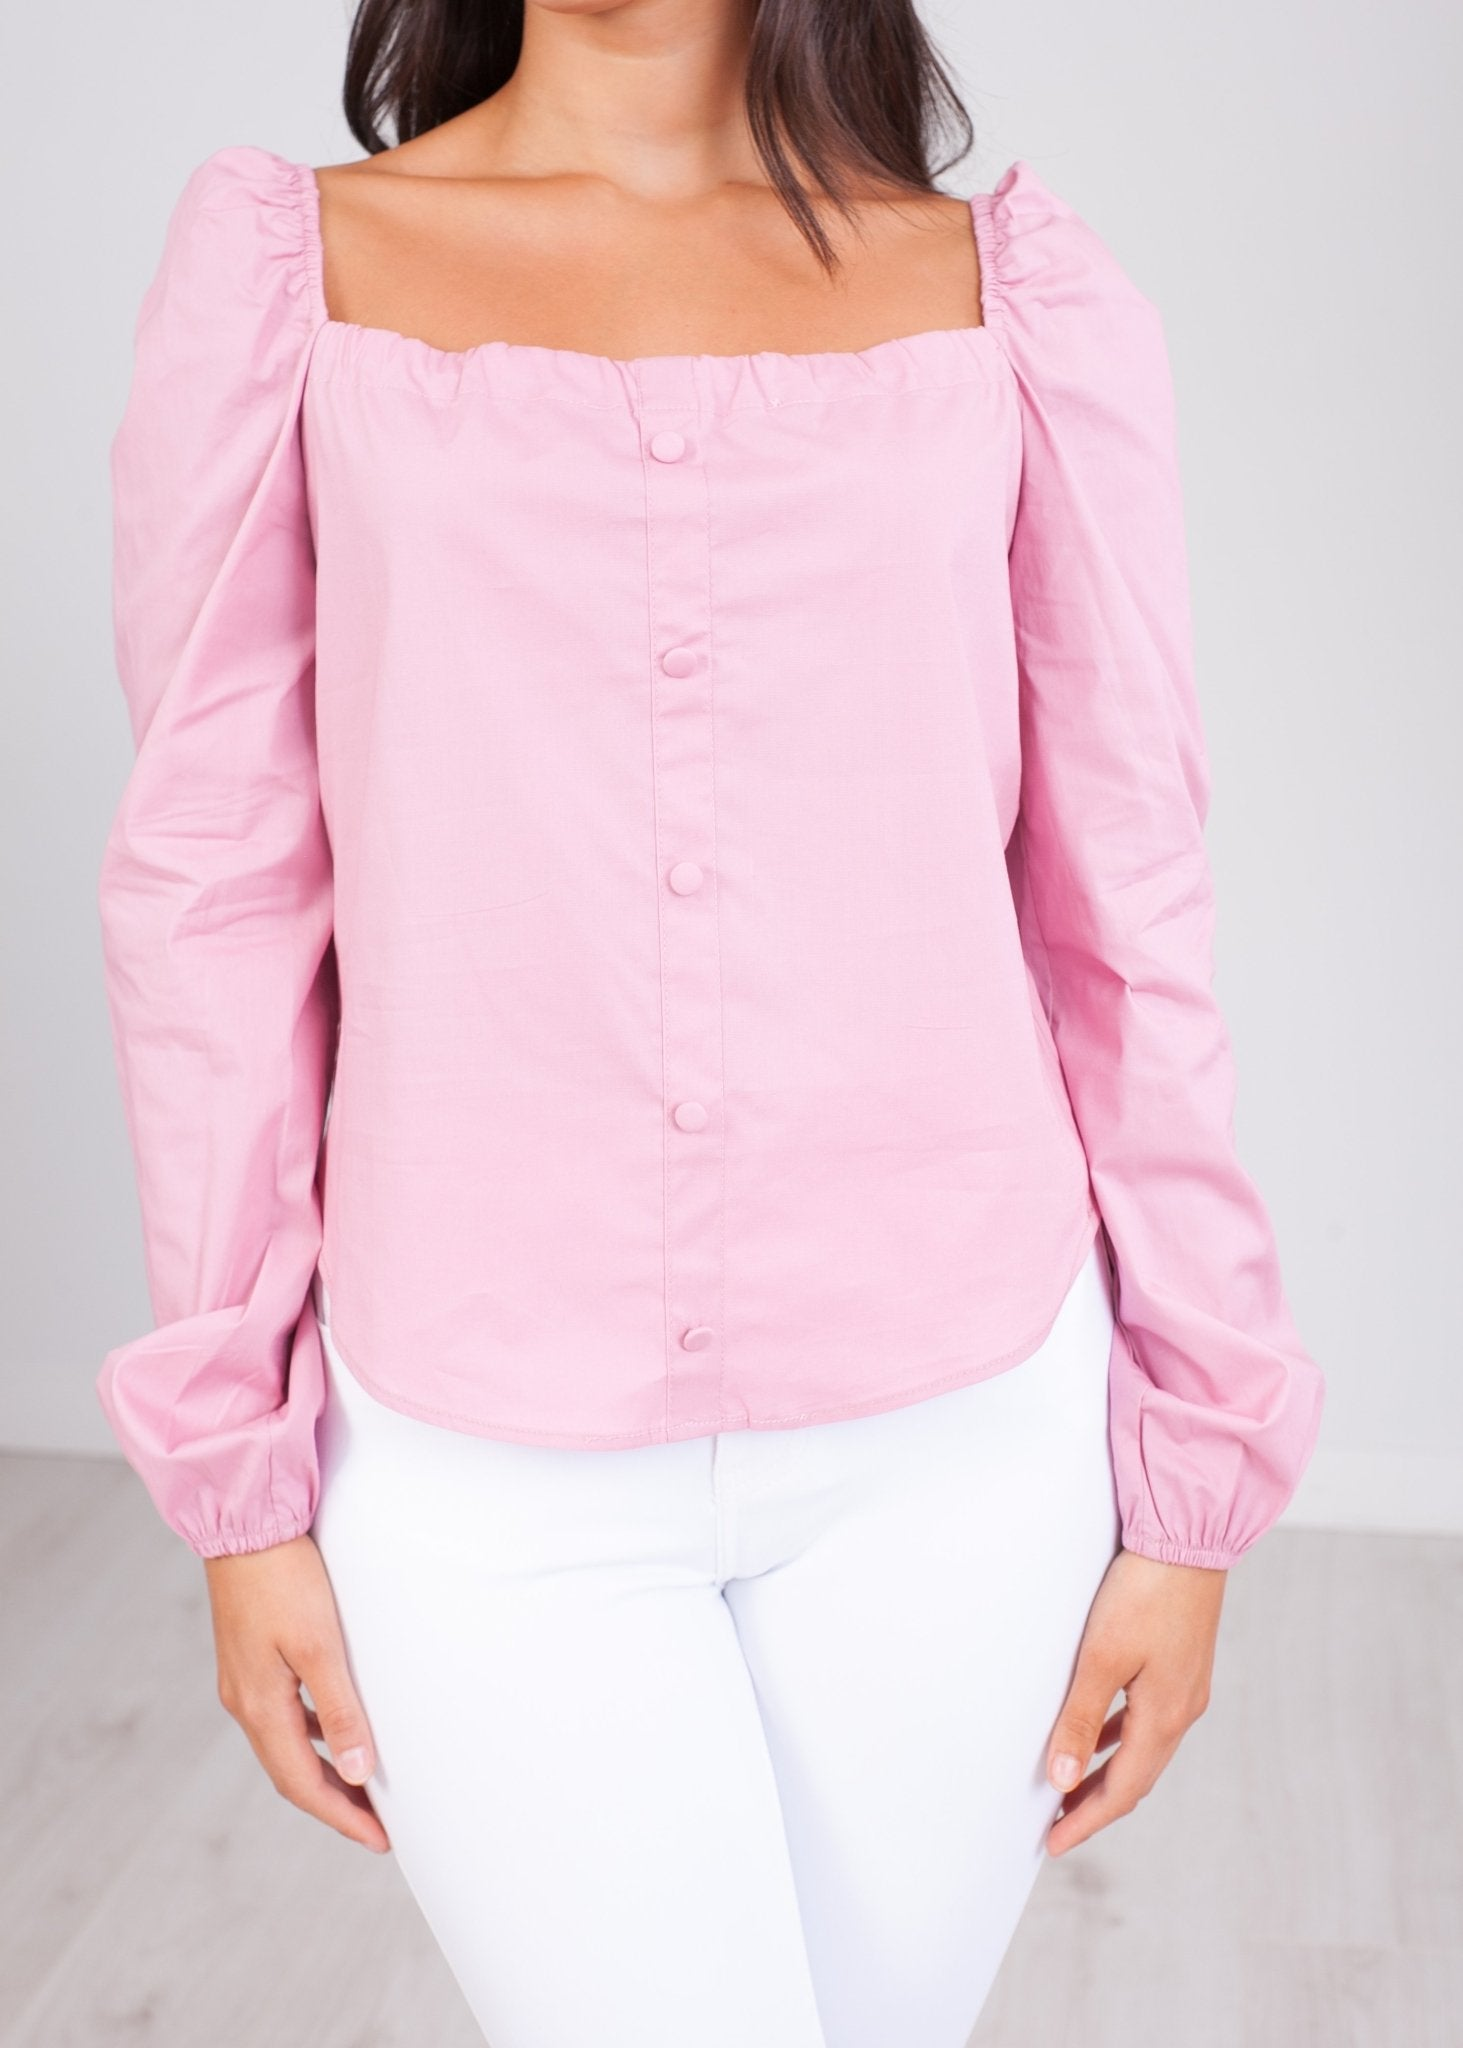 Heidi Pink Bardot Top - The Walk in Wardrobe